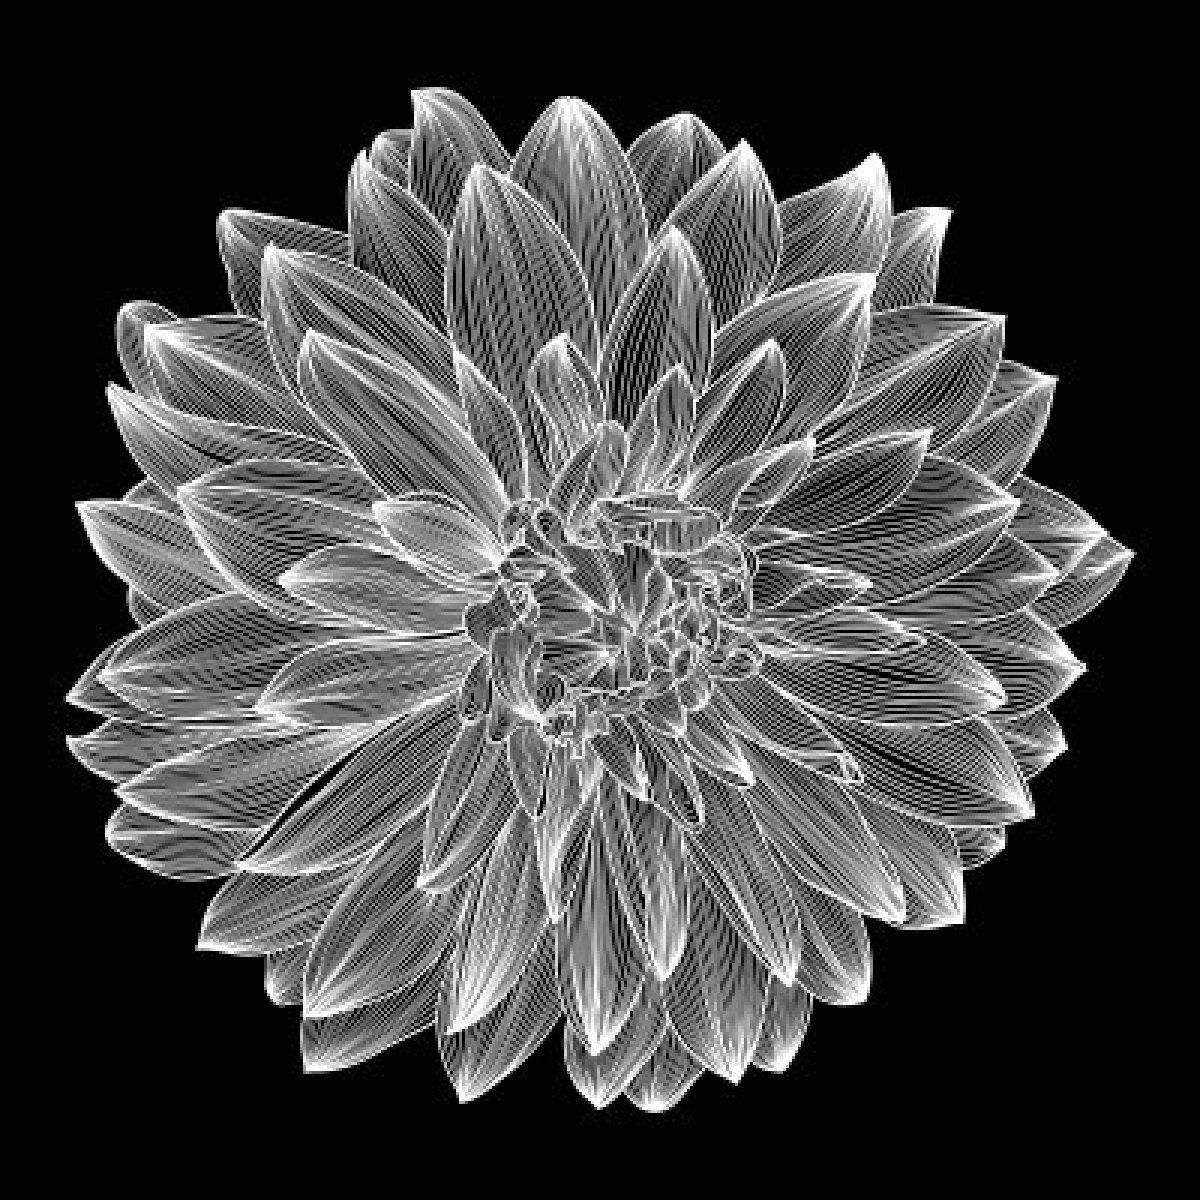 Black And White Flower png download - 633*414 - Free Transparent Drawing  png Download. - CleanPNG / KissPNG